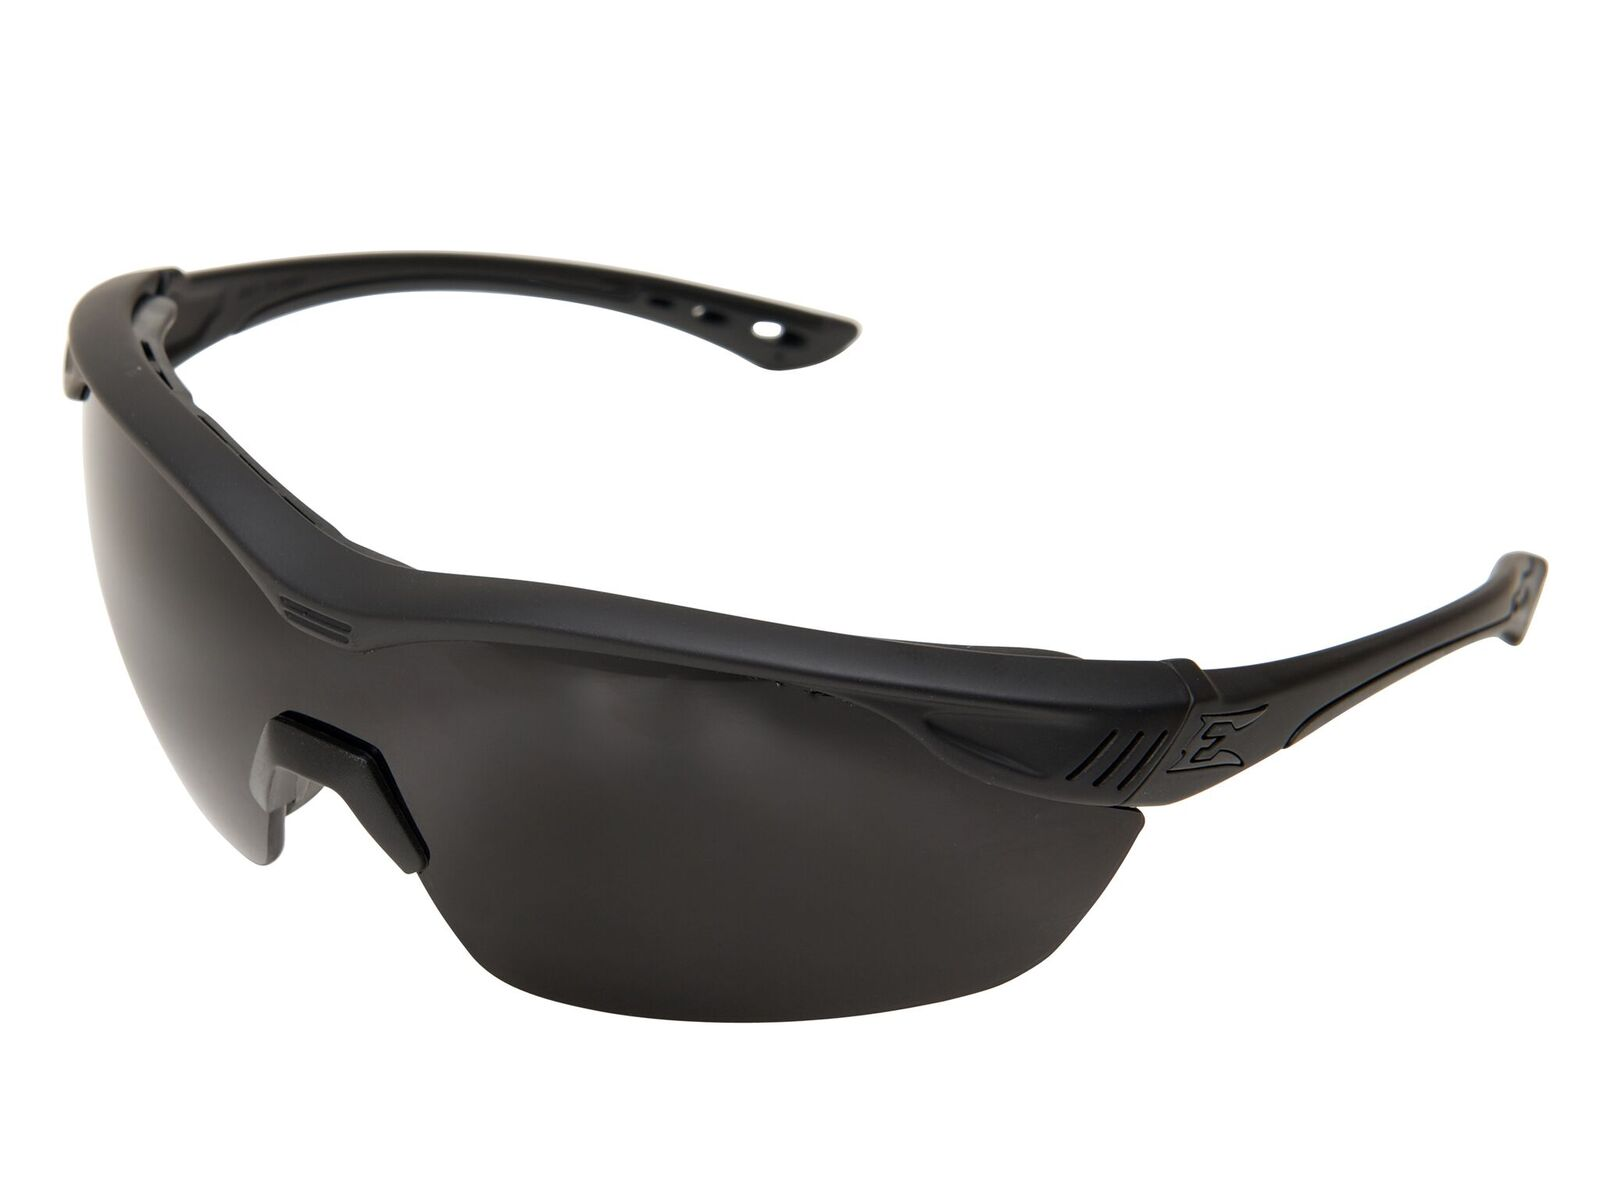 efc06255d4 Edge Tactical Overlord Glasses FREE S H HO61-G15